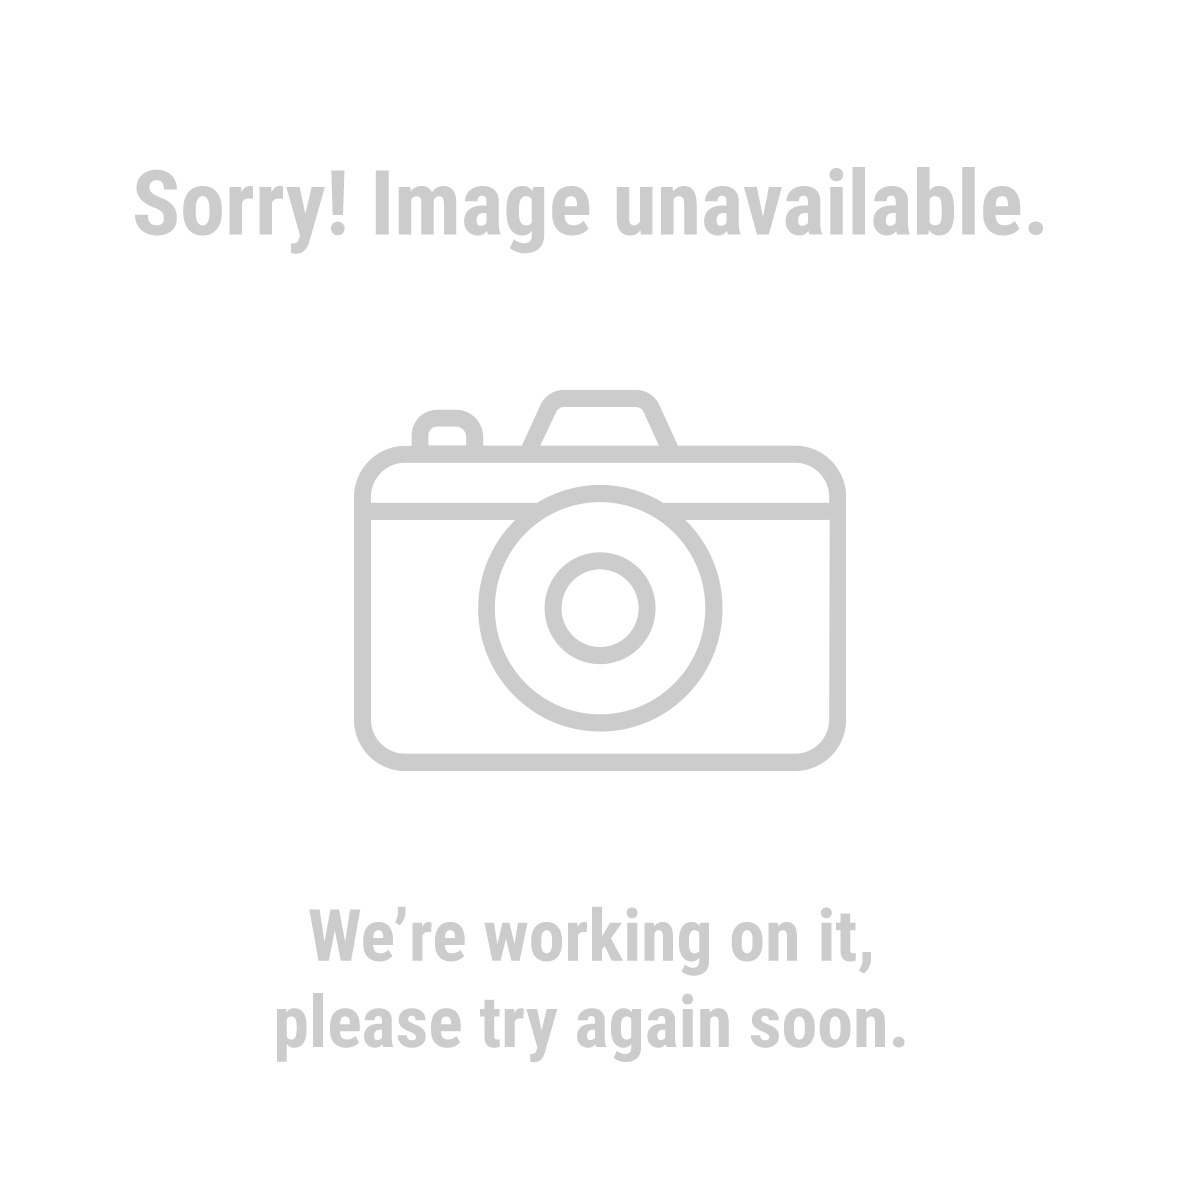 "HFT 54893 7 Ft. 11"" x 9 Ft. 10-3/4"" Reversible Silver and Blue Tarp"